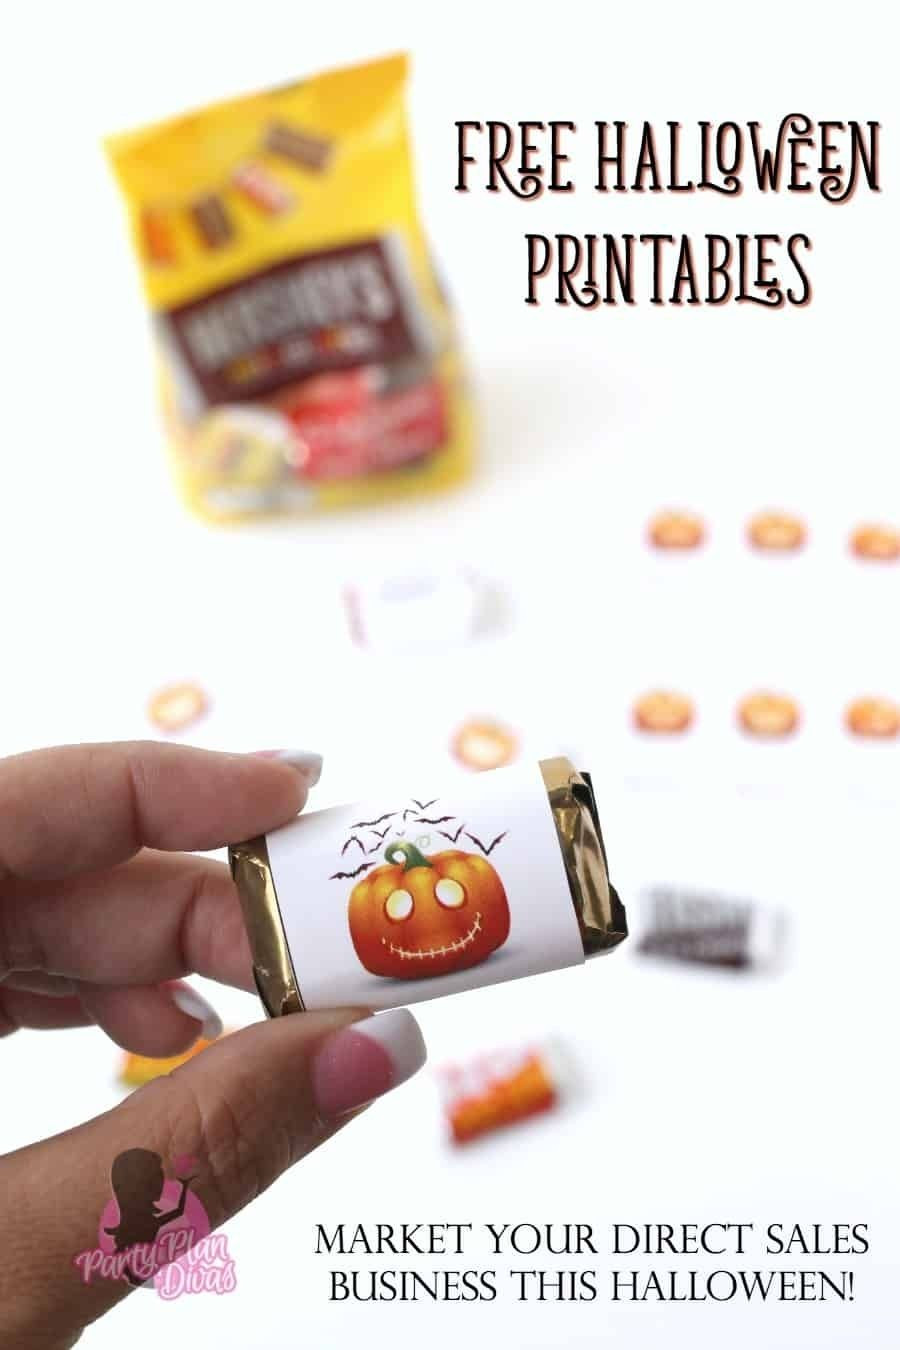 Tips & Treats Can Be Shared on Halloween 2021